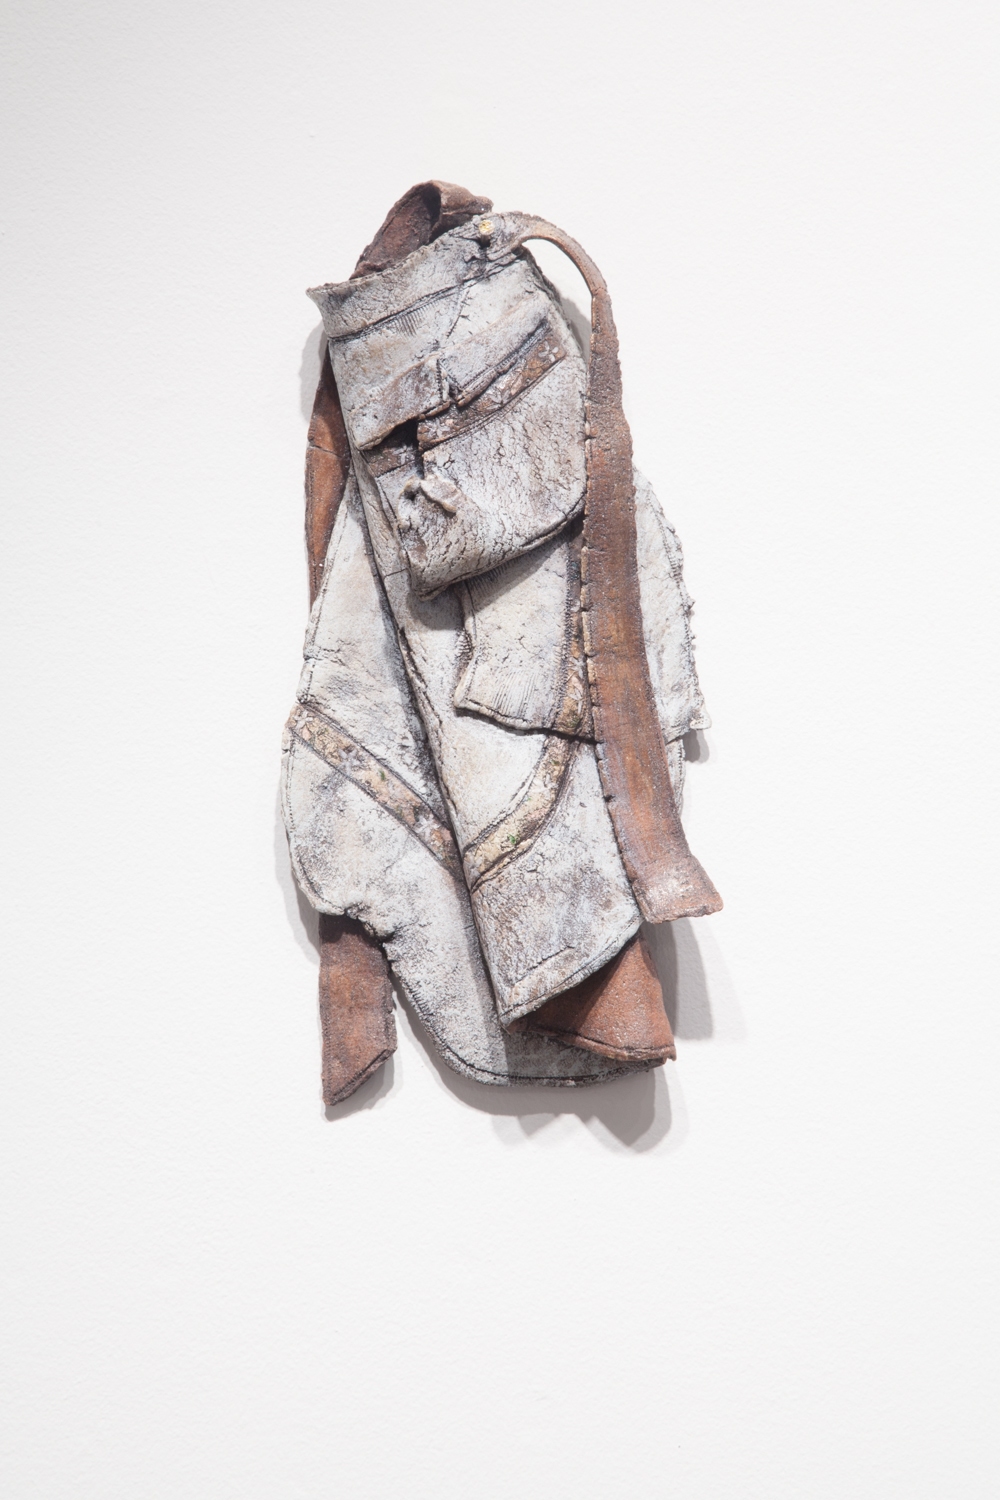 Claire Shurley     G-mama's Apron     reclaimed stoneware, dirt from Shurley farmland, slip, stain,glaze, cone 6 oxidation